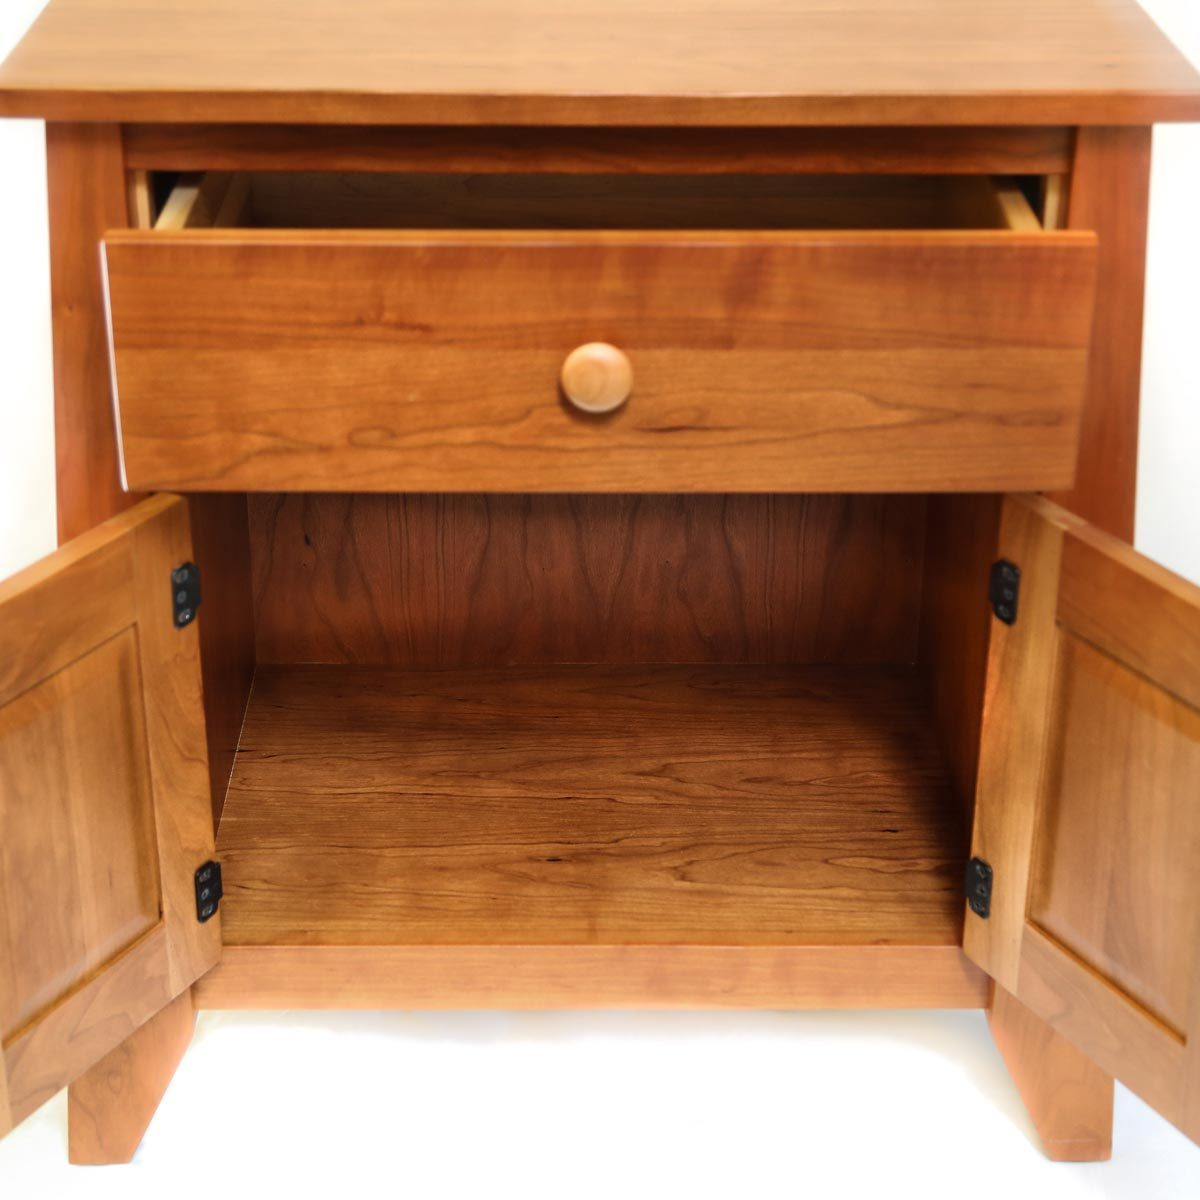 Open doors of solid cherry Bangor nightstand showing storage space